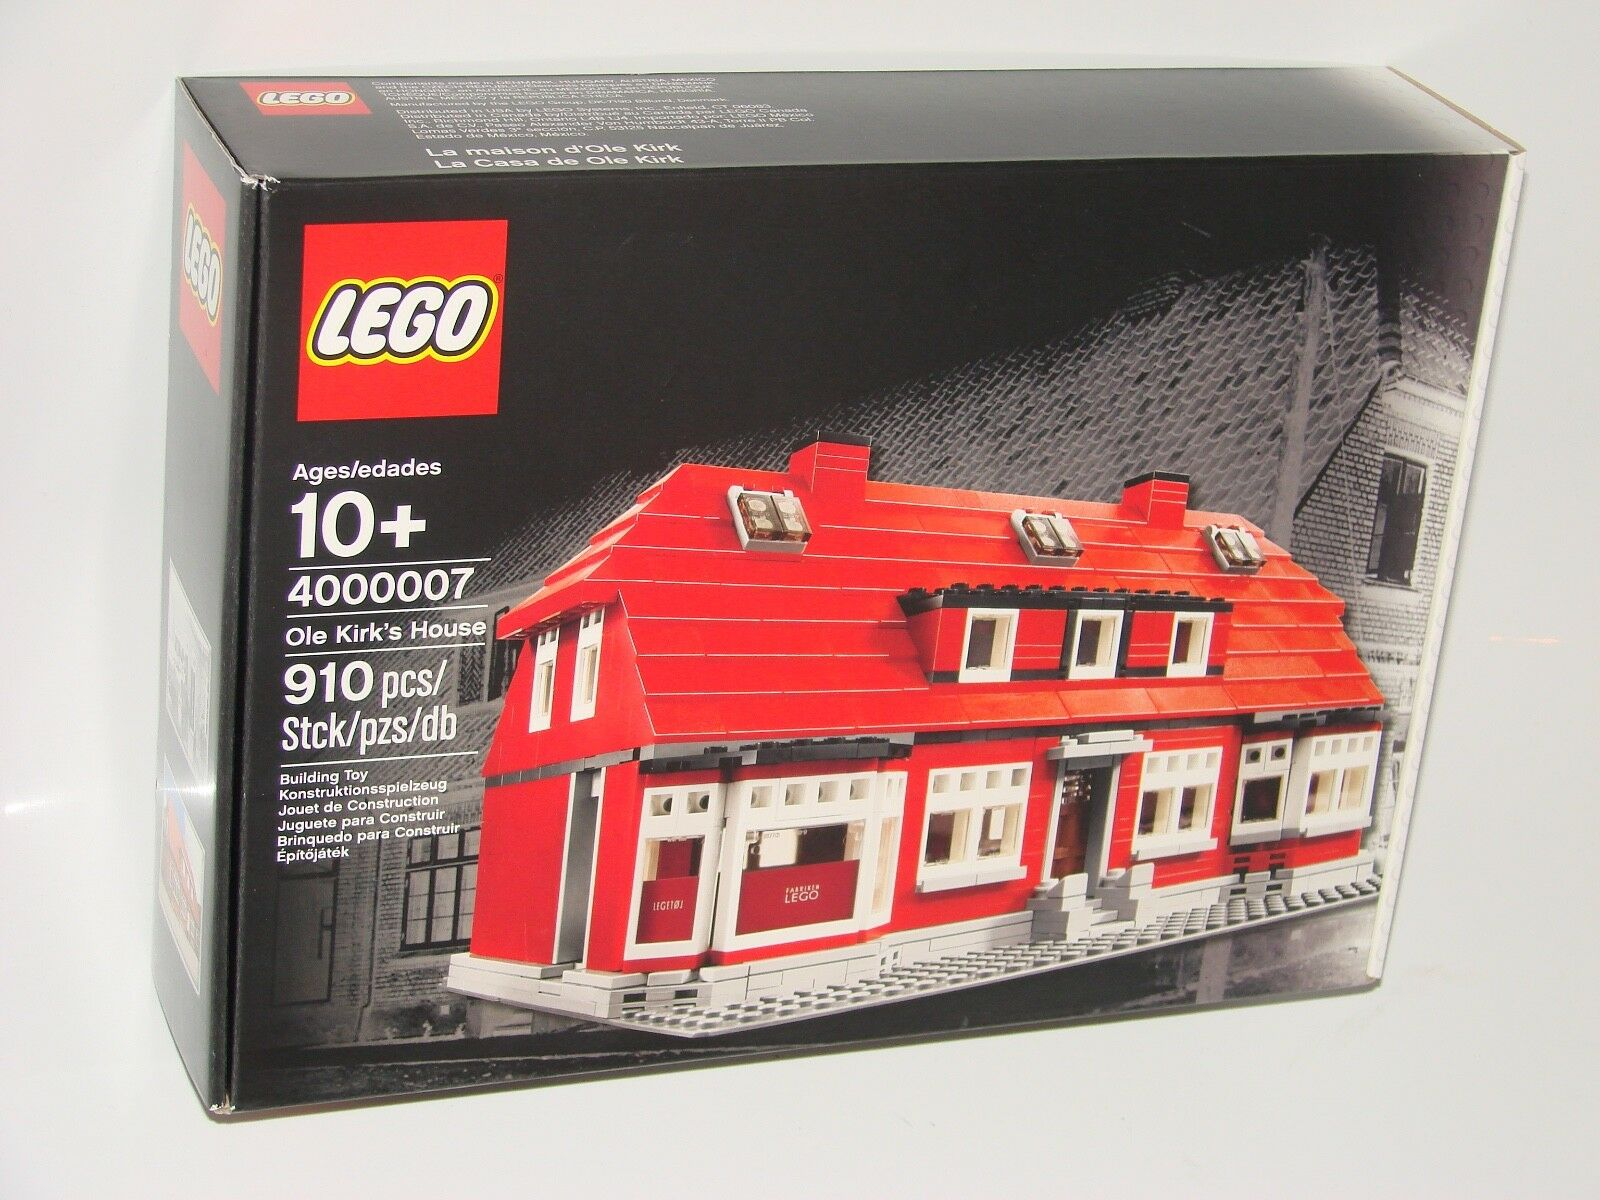 LEGO ® Exclusive 4000007 Ole Kirk's House NUOVO OVP _ NEW MISB NRFB hard to find